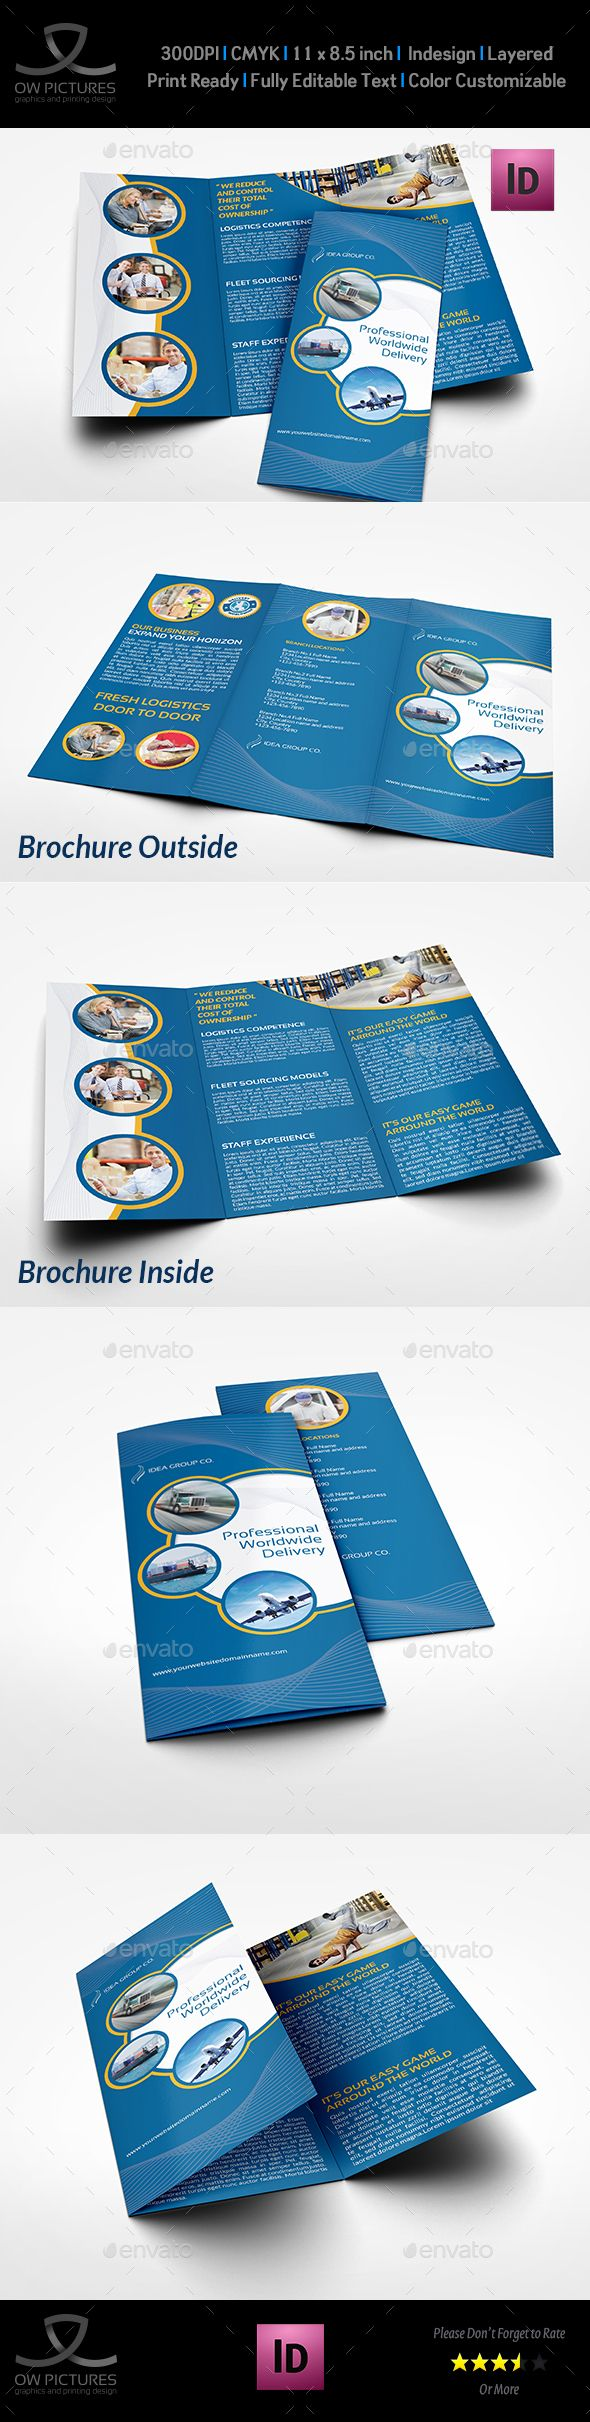 Logistic Services TriFold Brochure Template Vol  Brochures